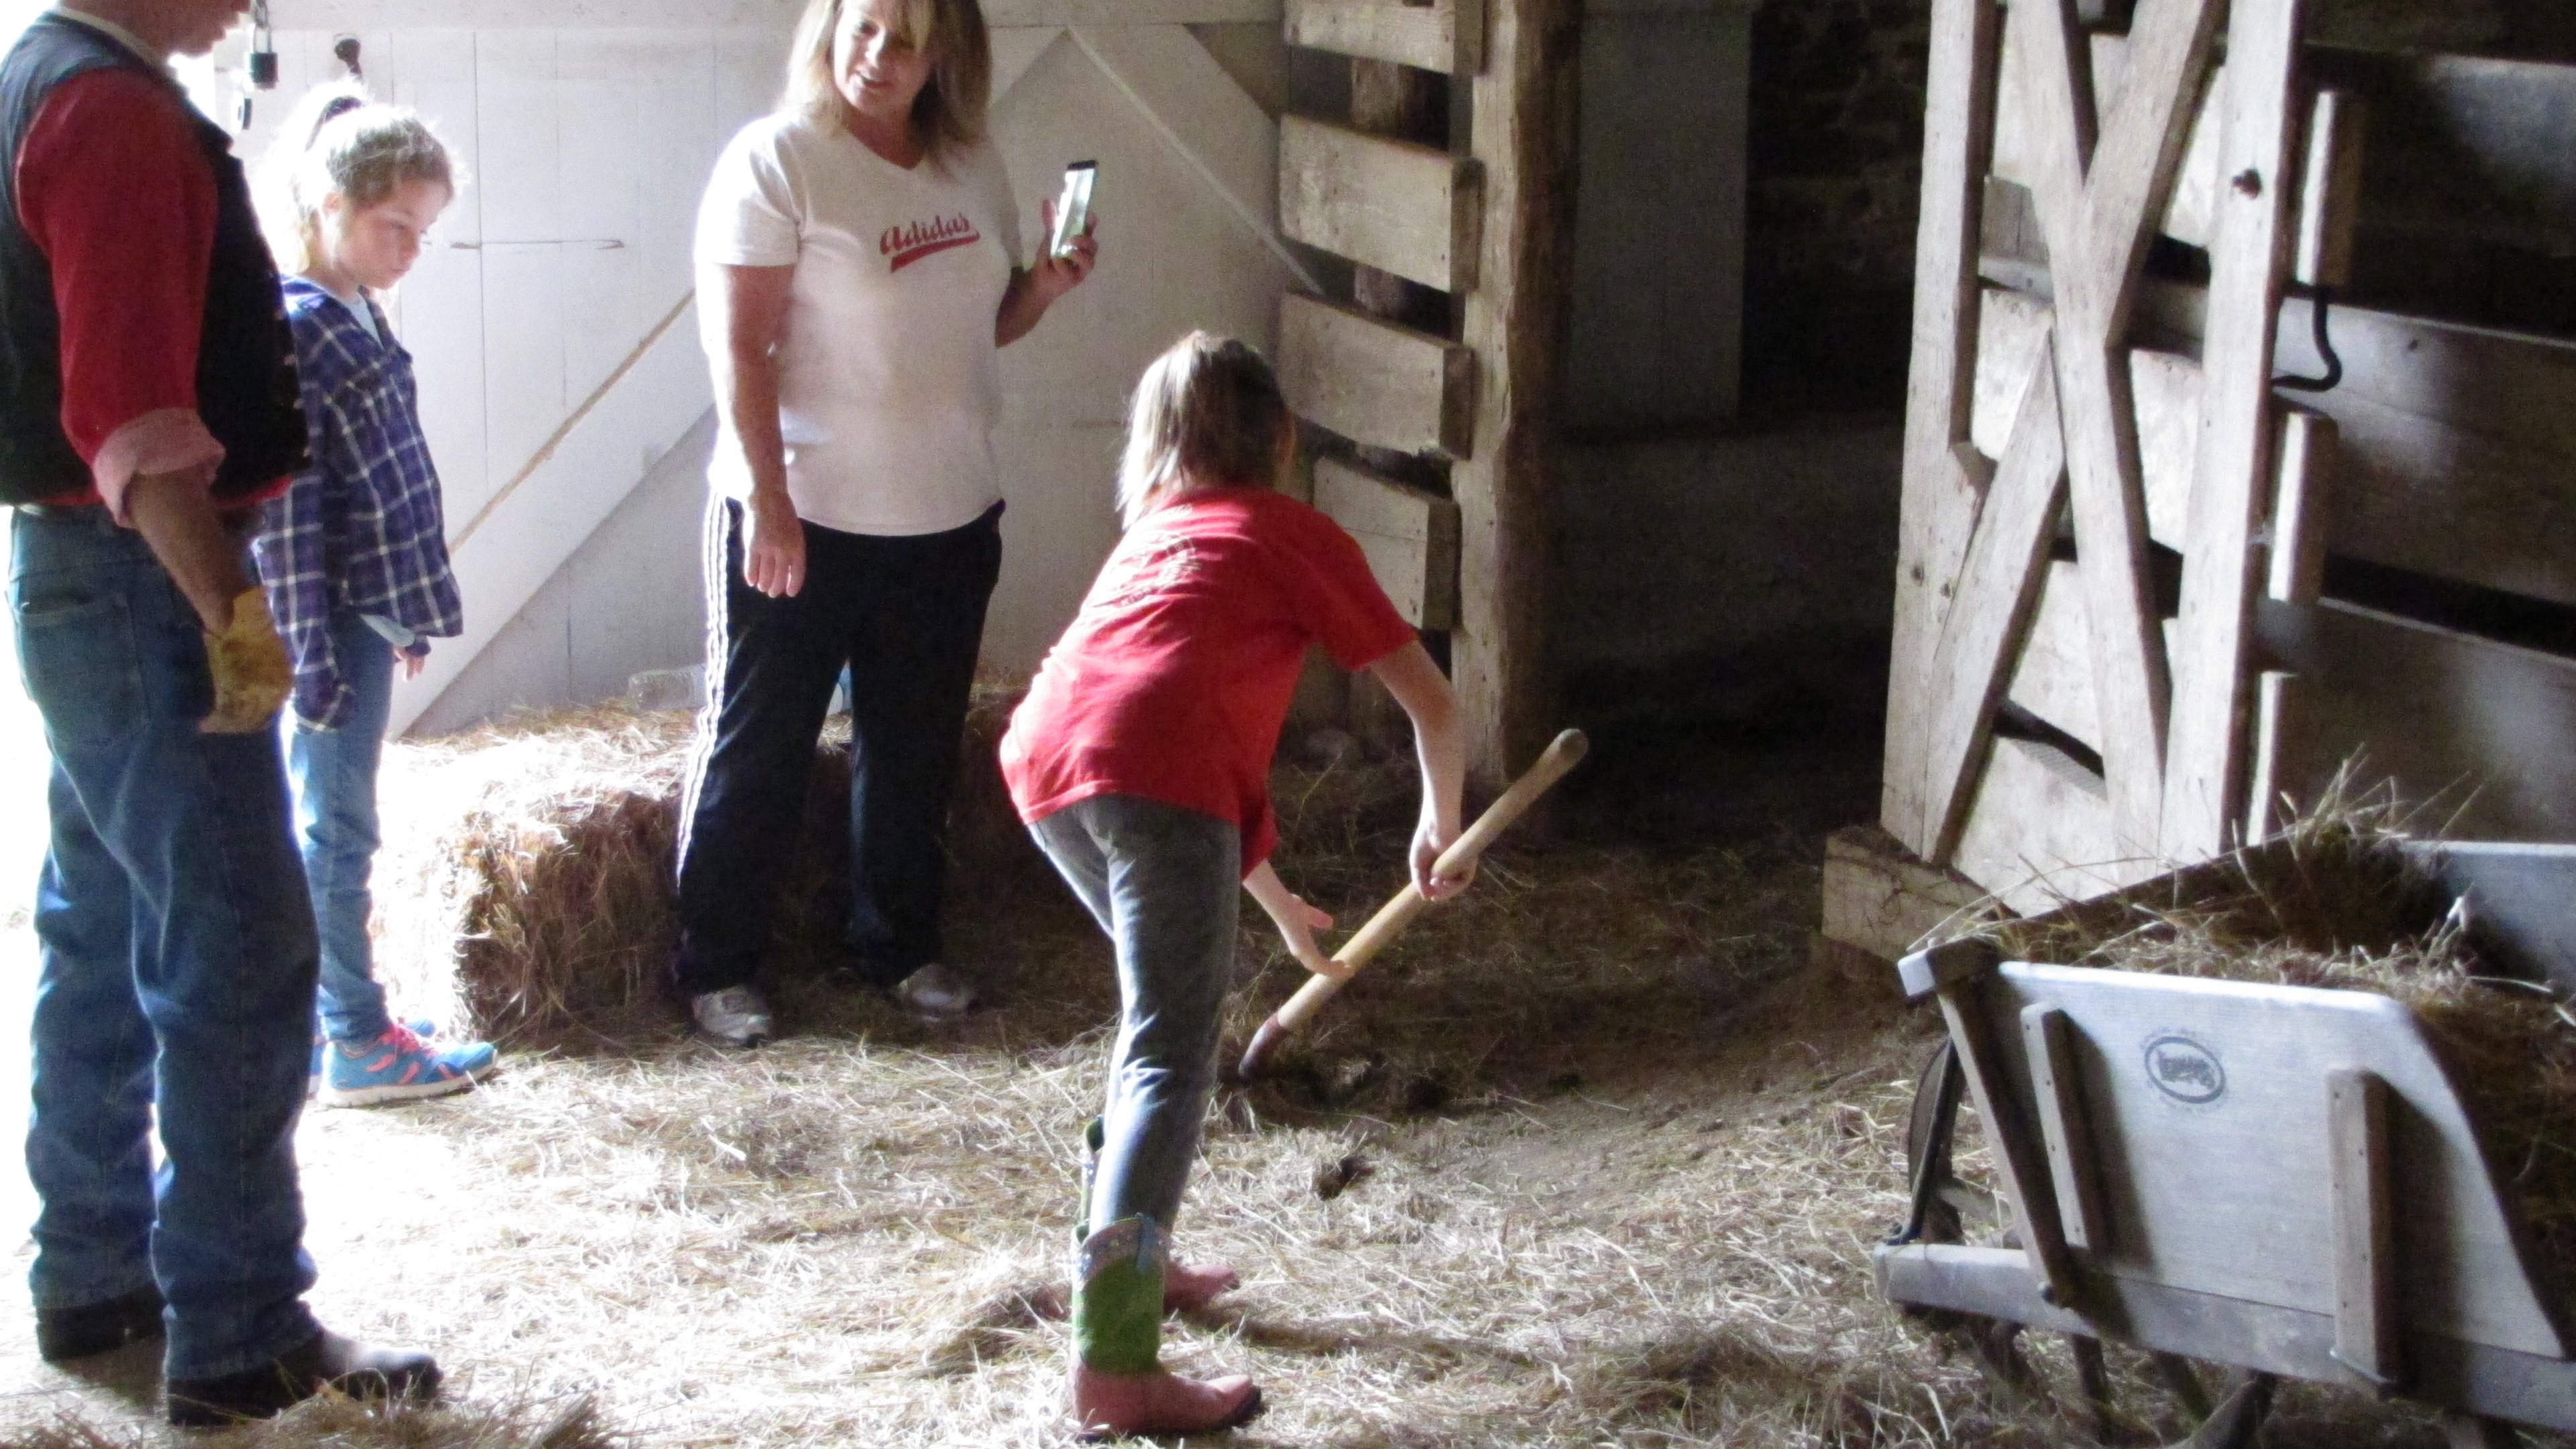 Kids doing chores in the barn using a pitch fork